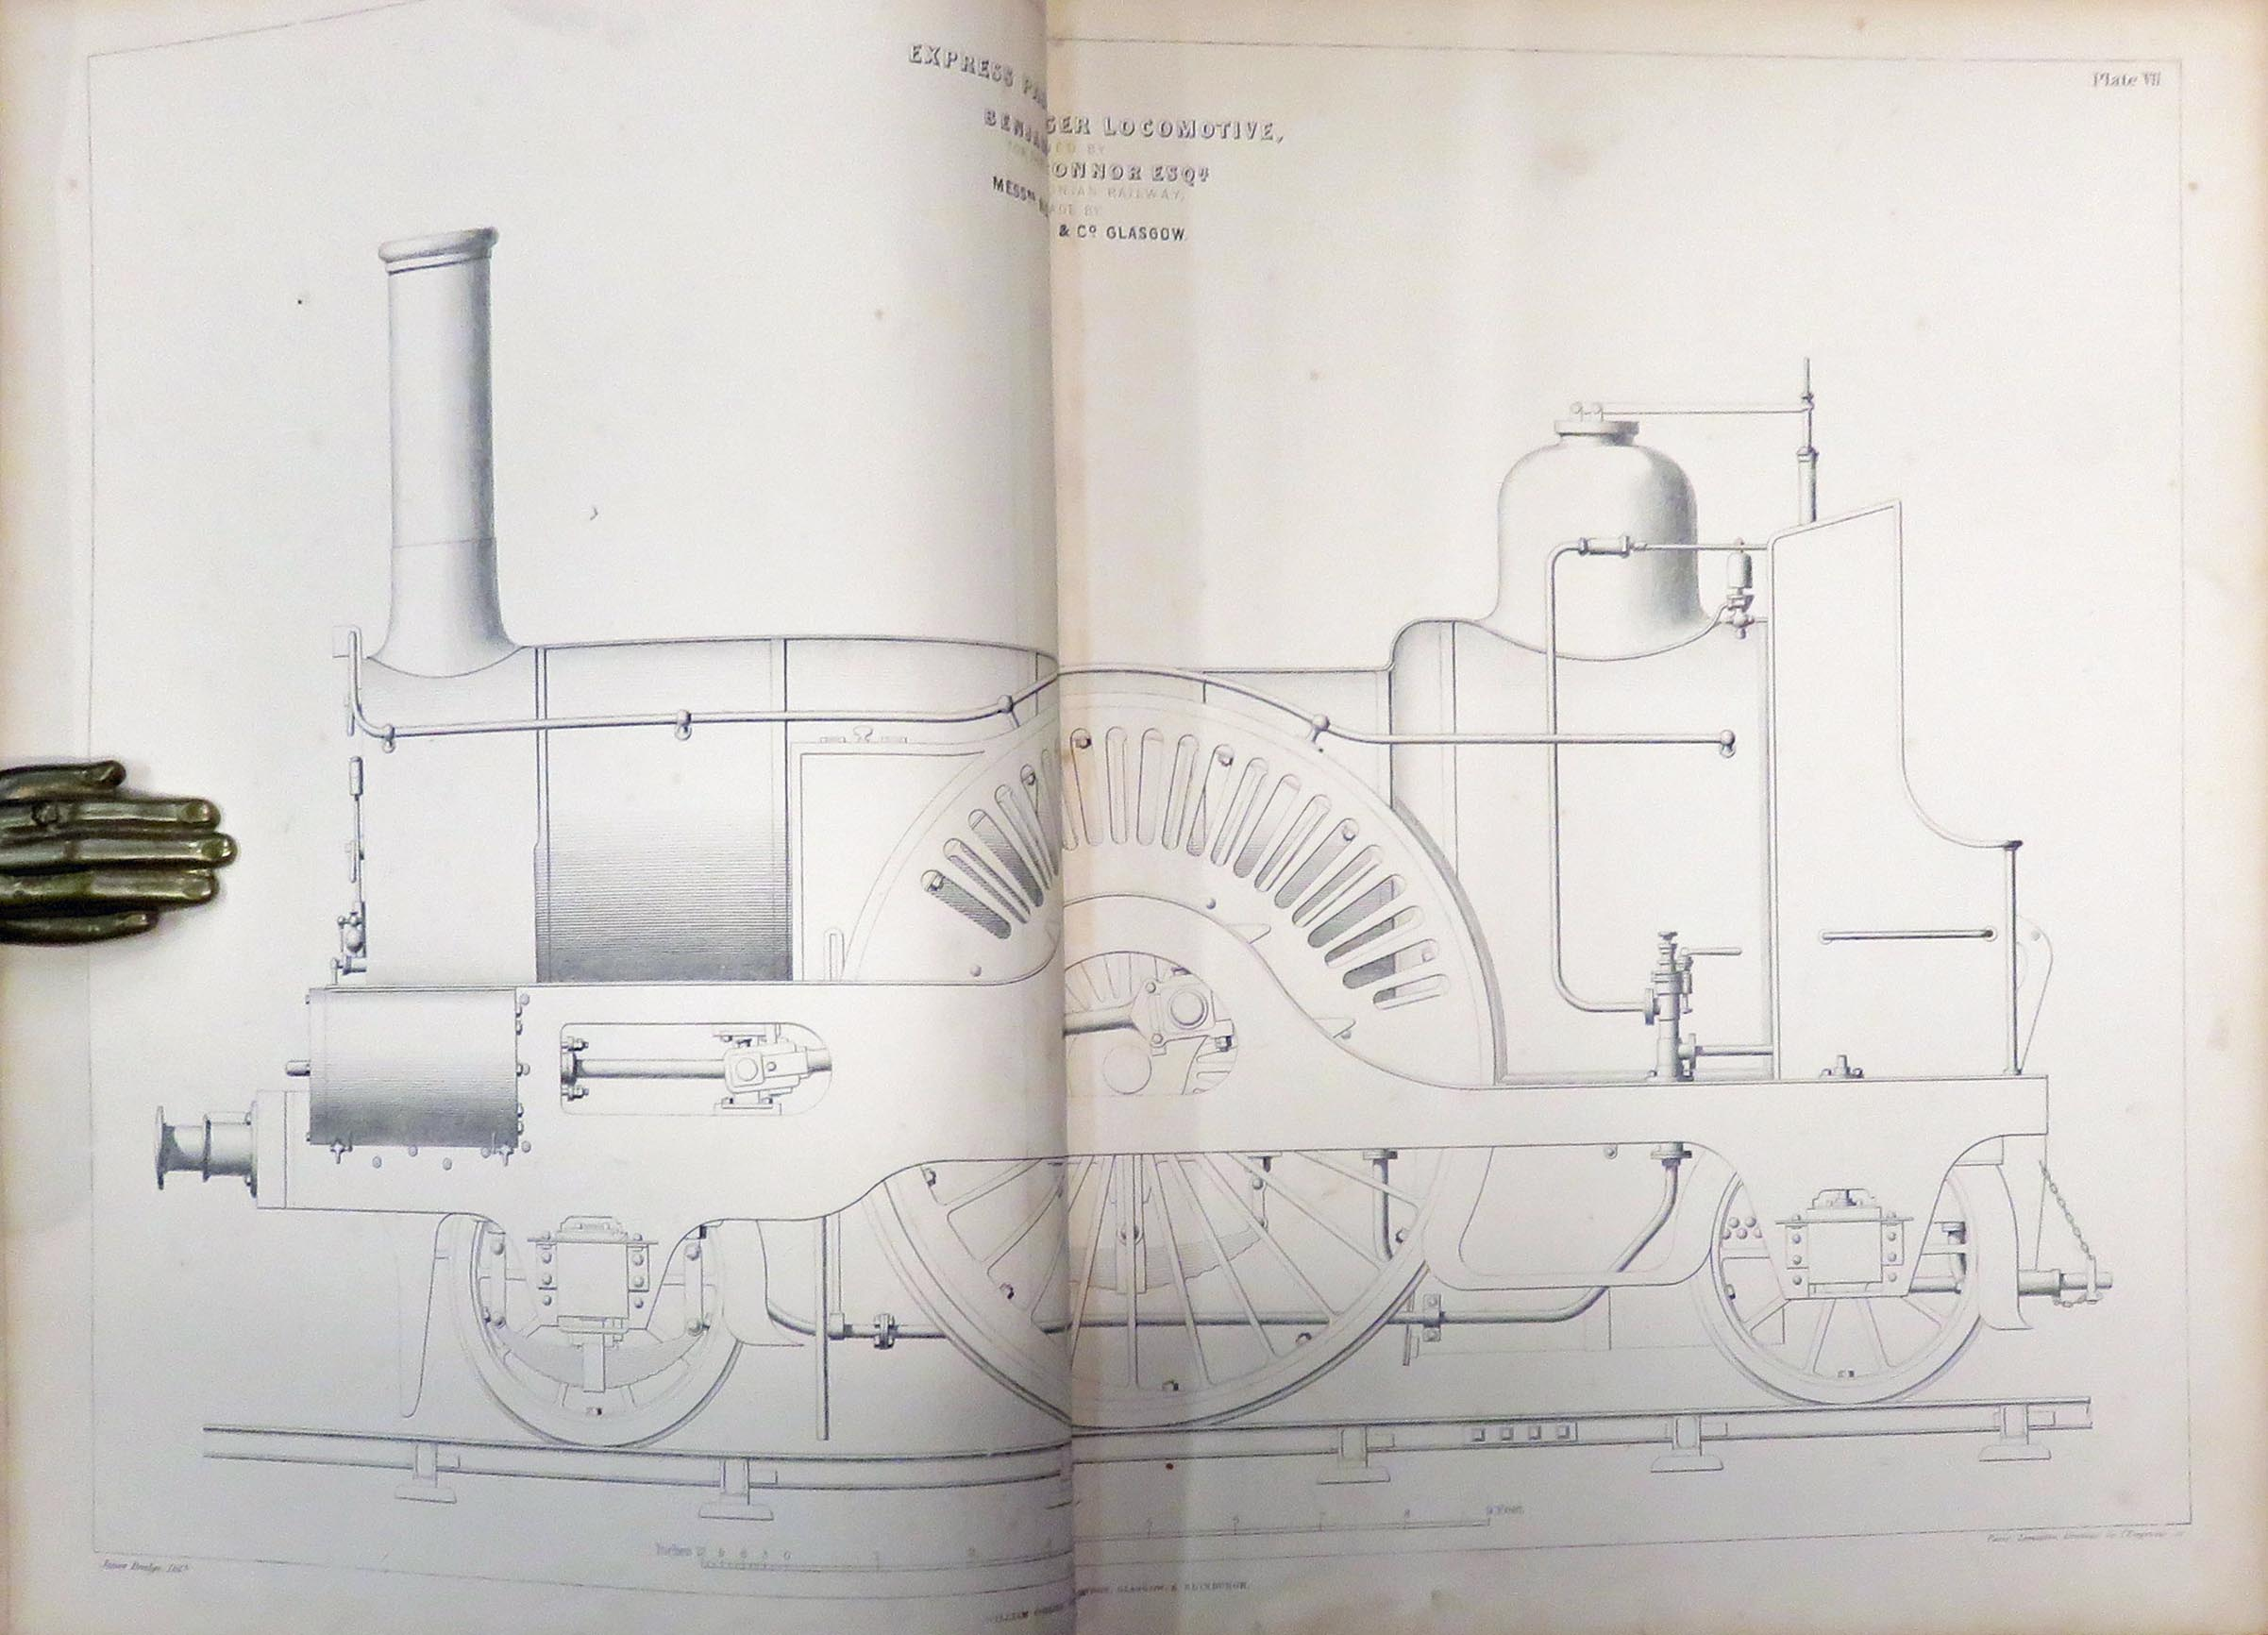 Locomotive Engineering, and The Mechanism of Railways: A Treatise on the Principles and Construction of The Locomotive Engine, Railway Carriages, and Railway Plant, with Examples in two volumes